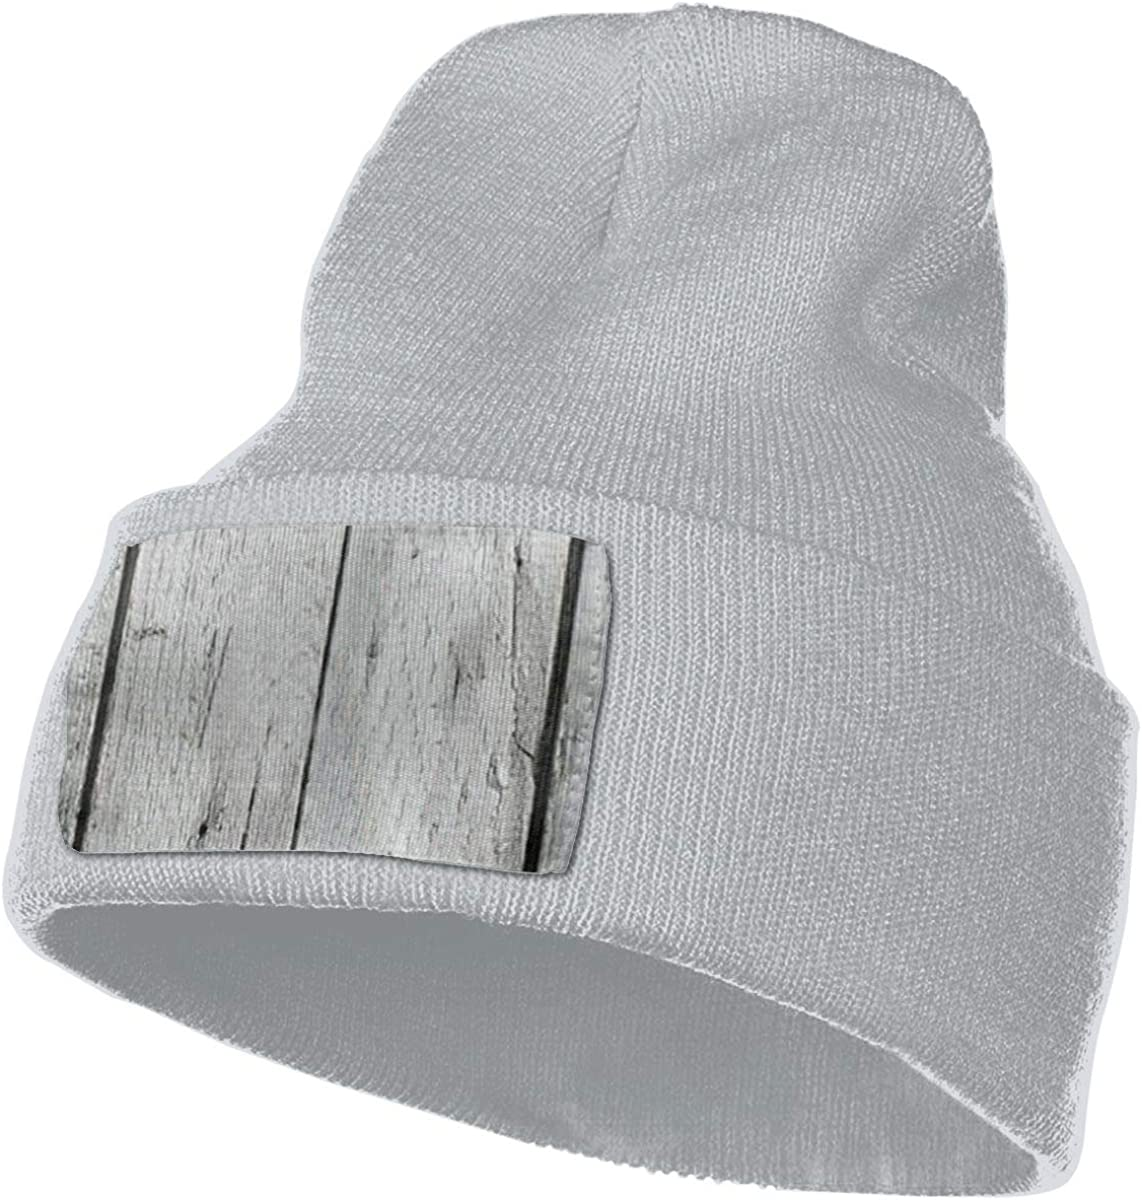 Wood Plank Background Thick Beanie Hat Ydbve81-G Unisex 100/% Acrylic Knit Hat Cap